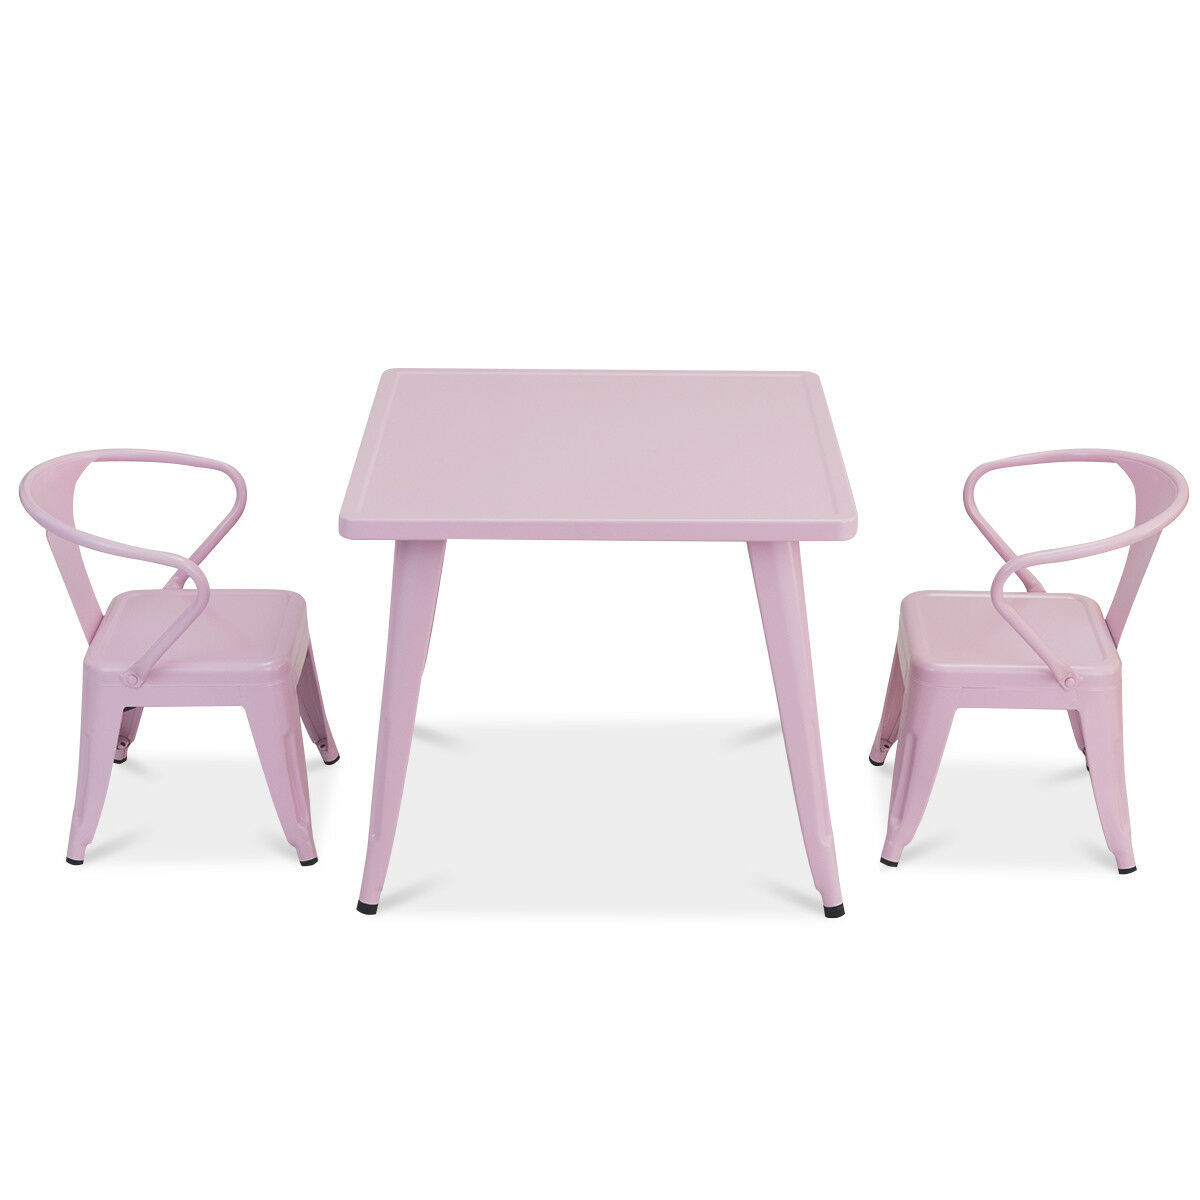 3 Pcs Kids Dining Set Square Table & 2 Tolix Armchairs Play Learn Outdoor Pink